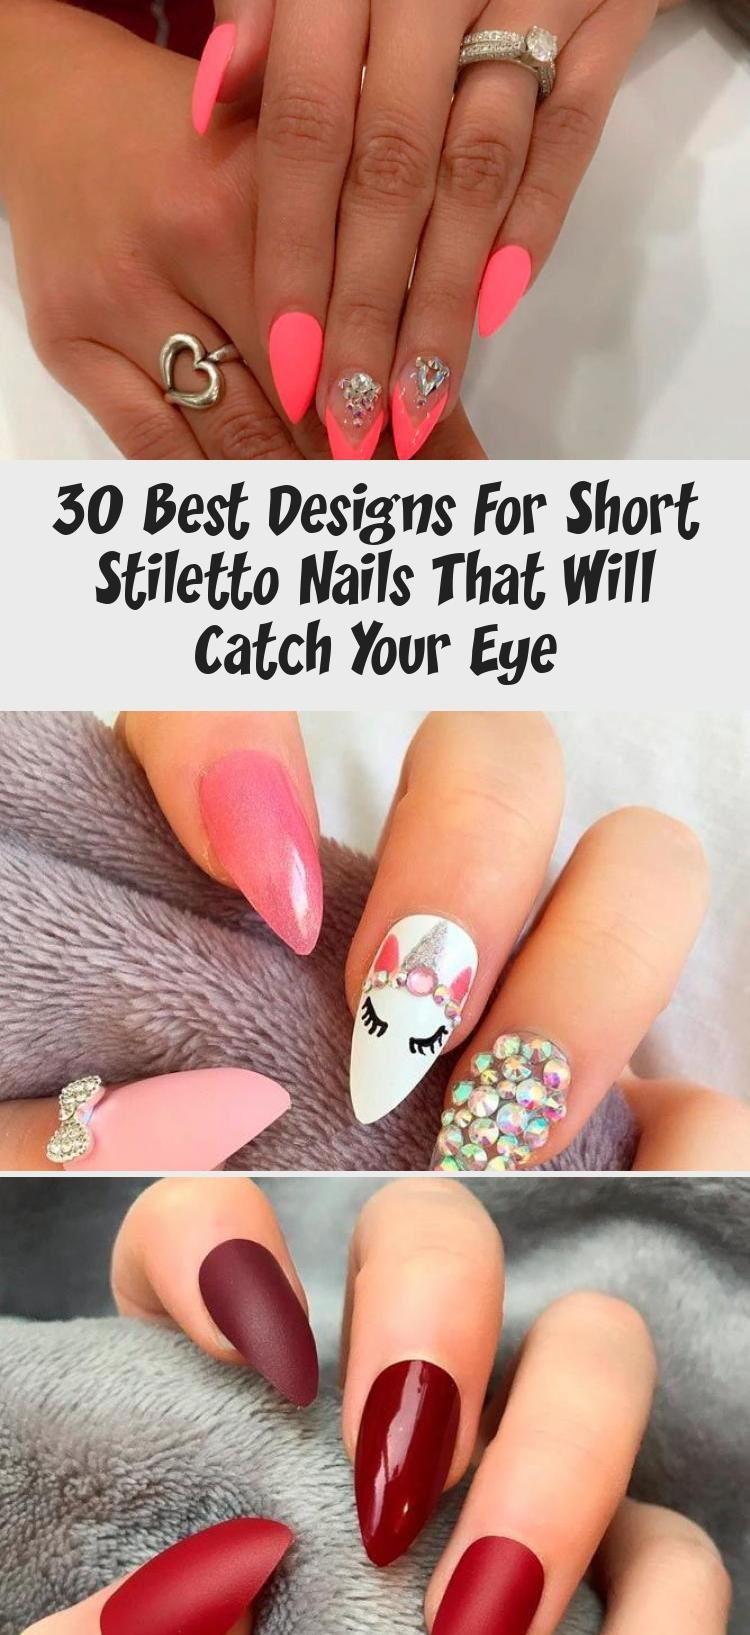 Photo of 30 Best Designs For Short Stiletto Nails That Will Catch Your Eye – Nail Art Desing